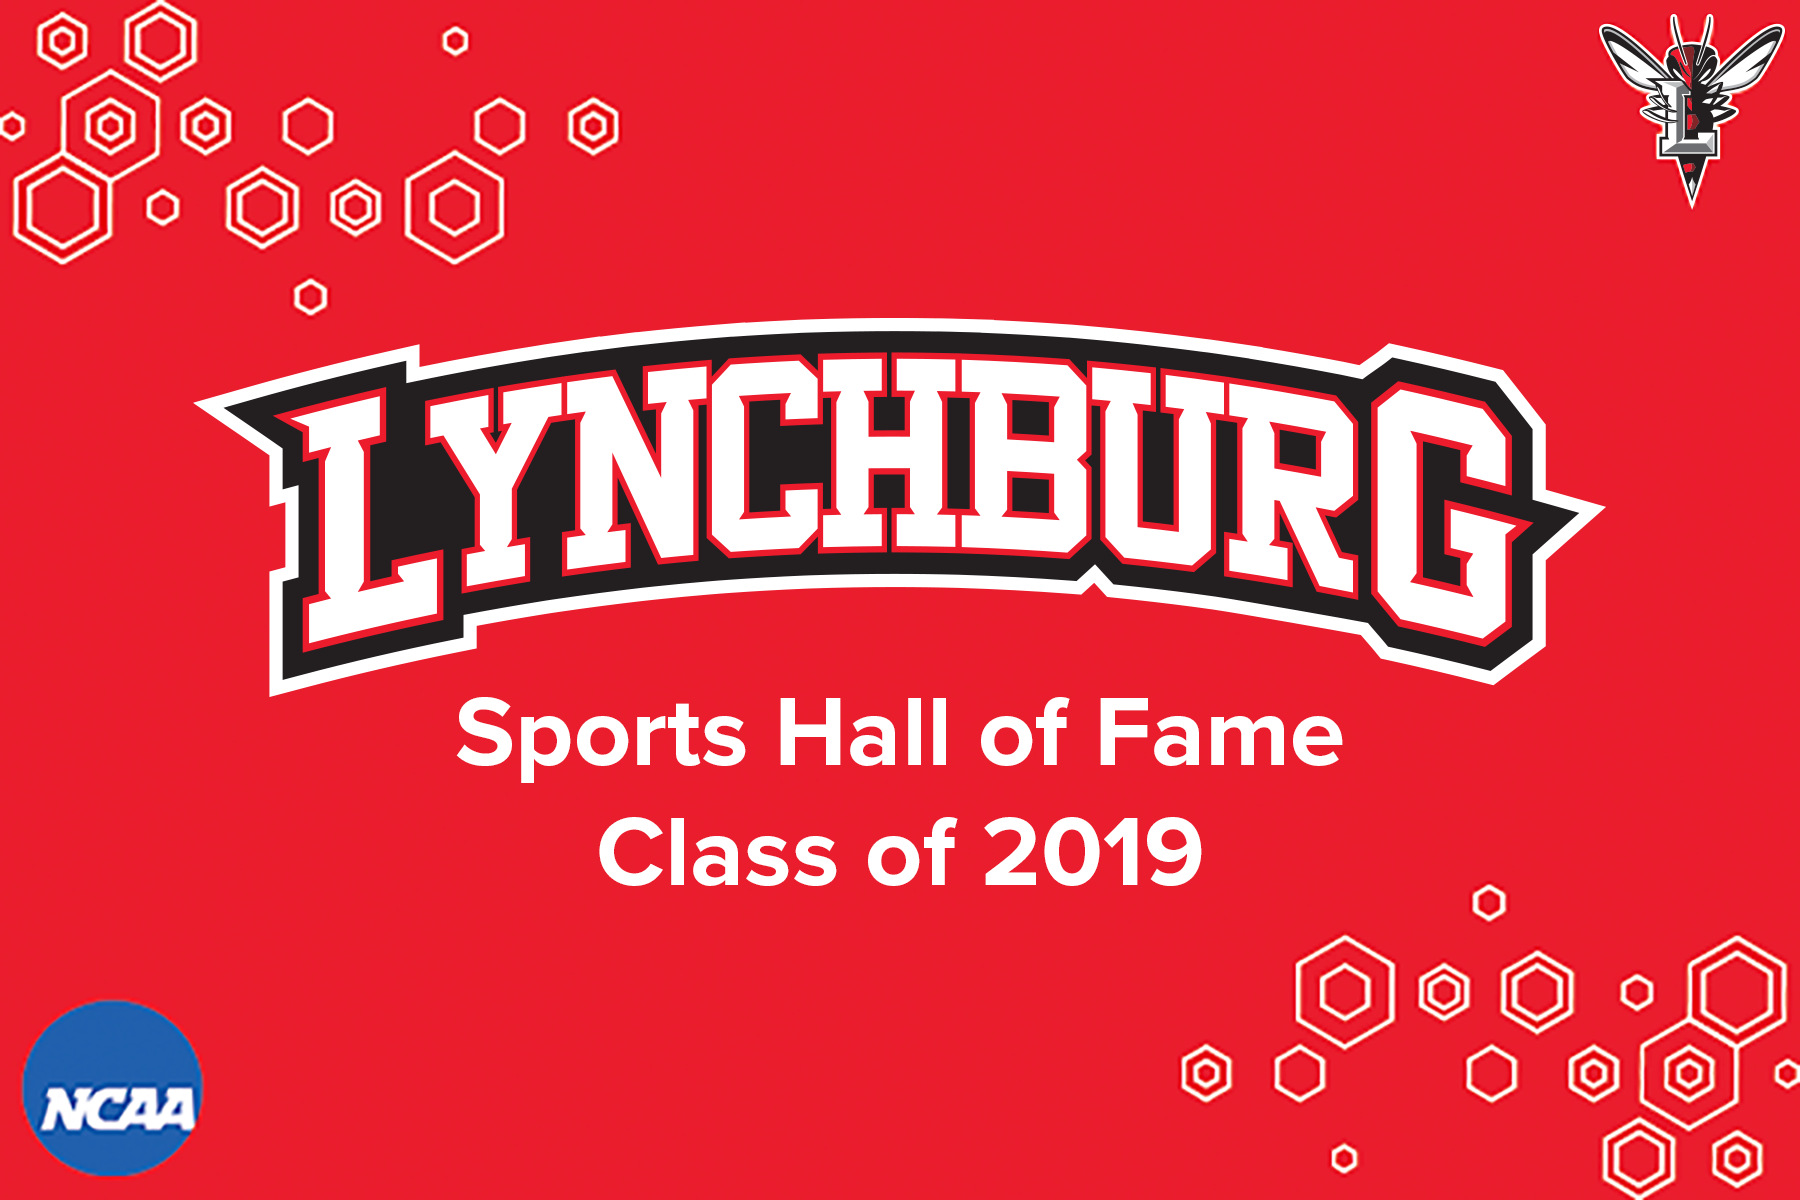 Red background with white text: Lynchburg sports hall of fame class of 2019